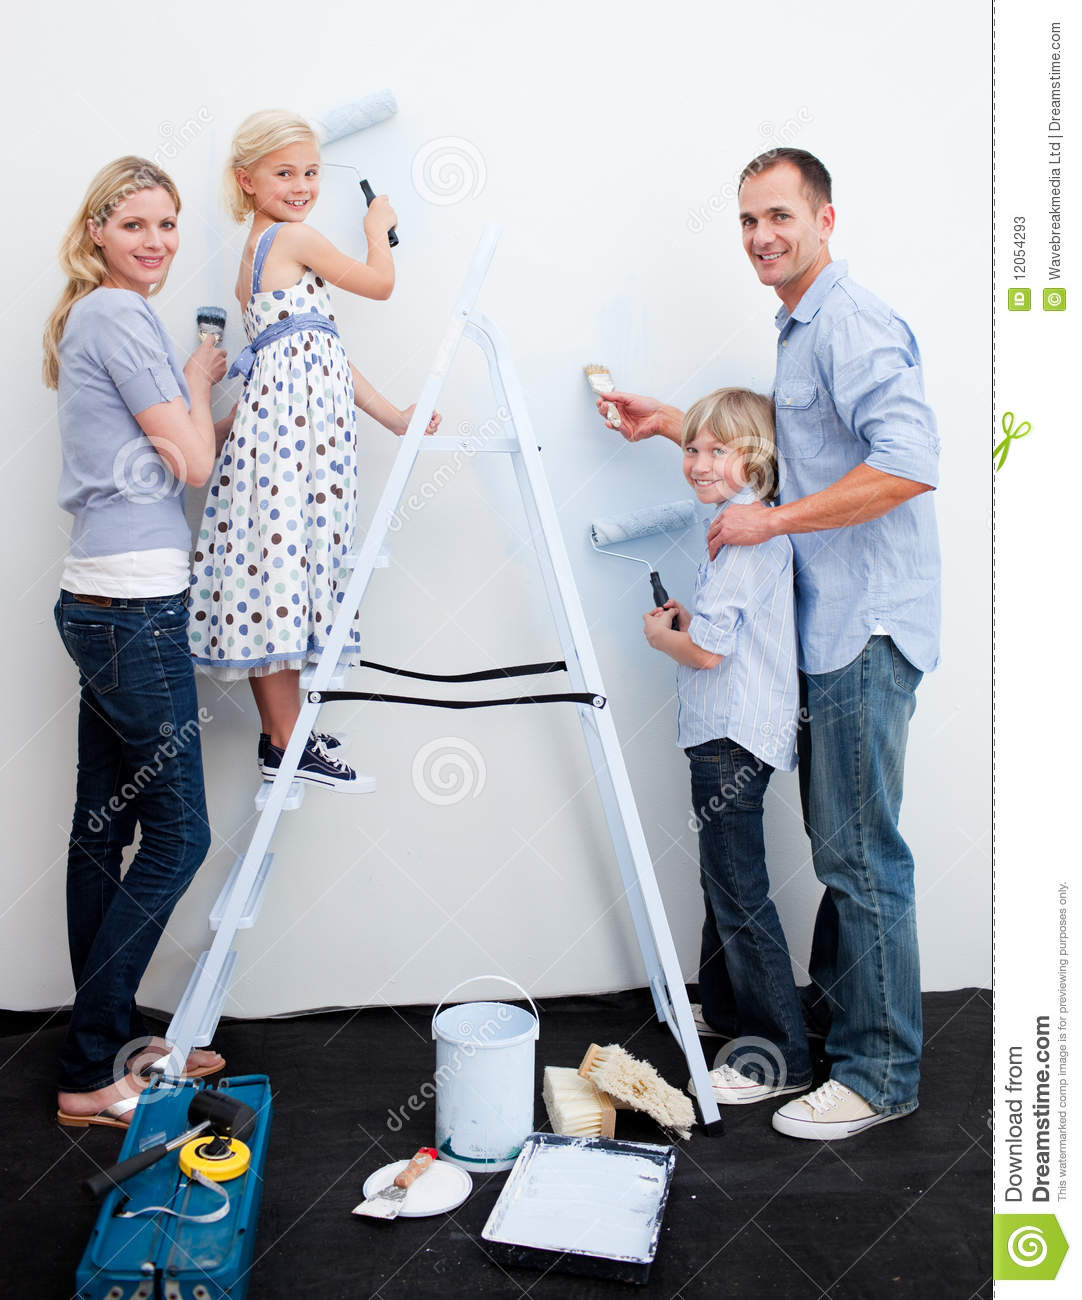 Happy Family Decorating Their New Home Stock Image - Image: 12054293